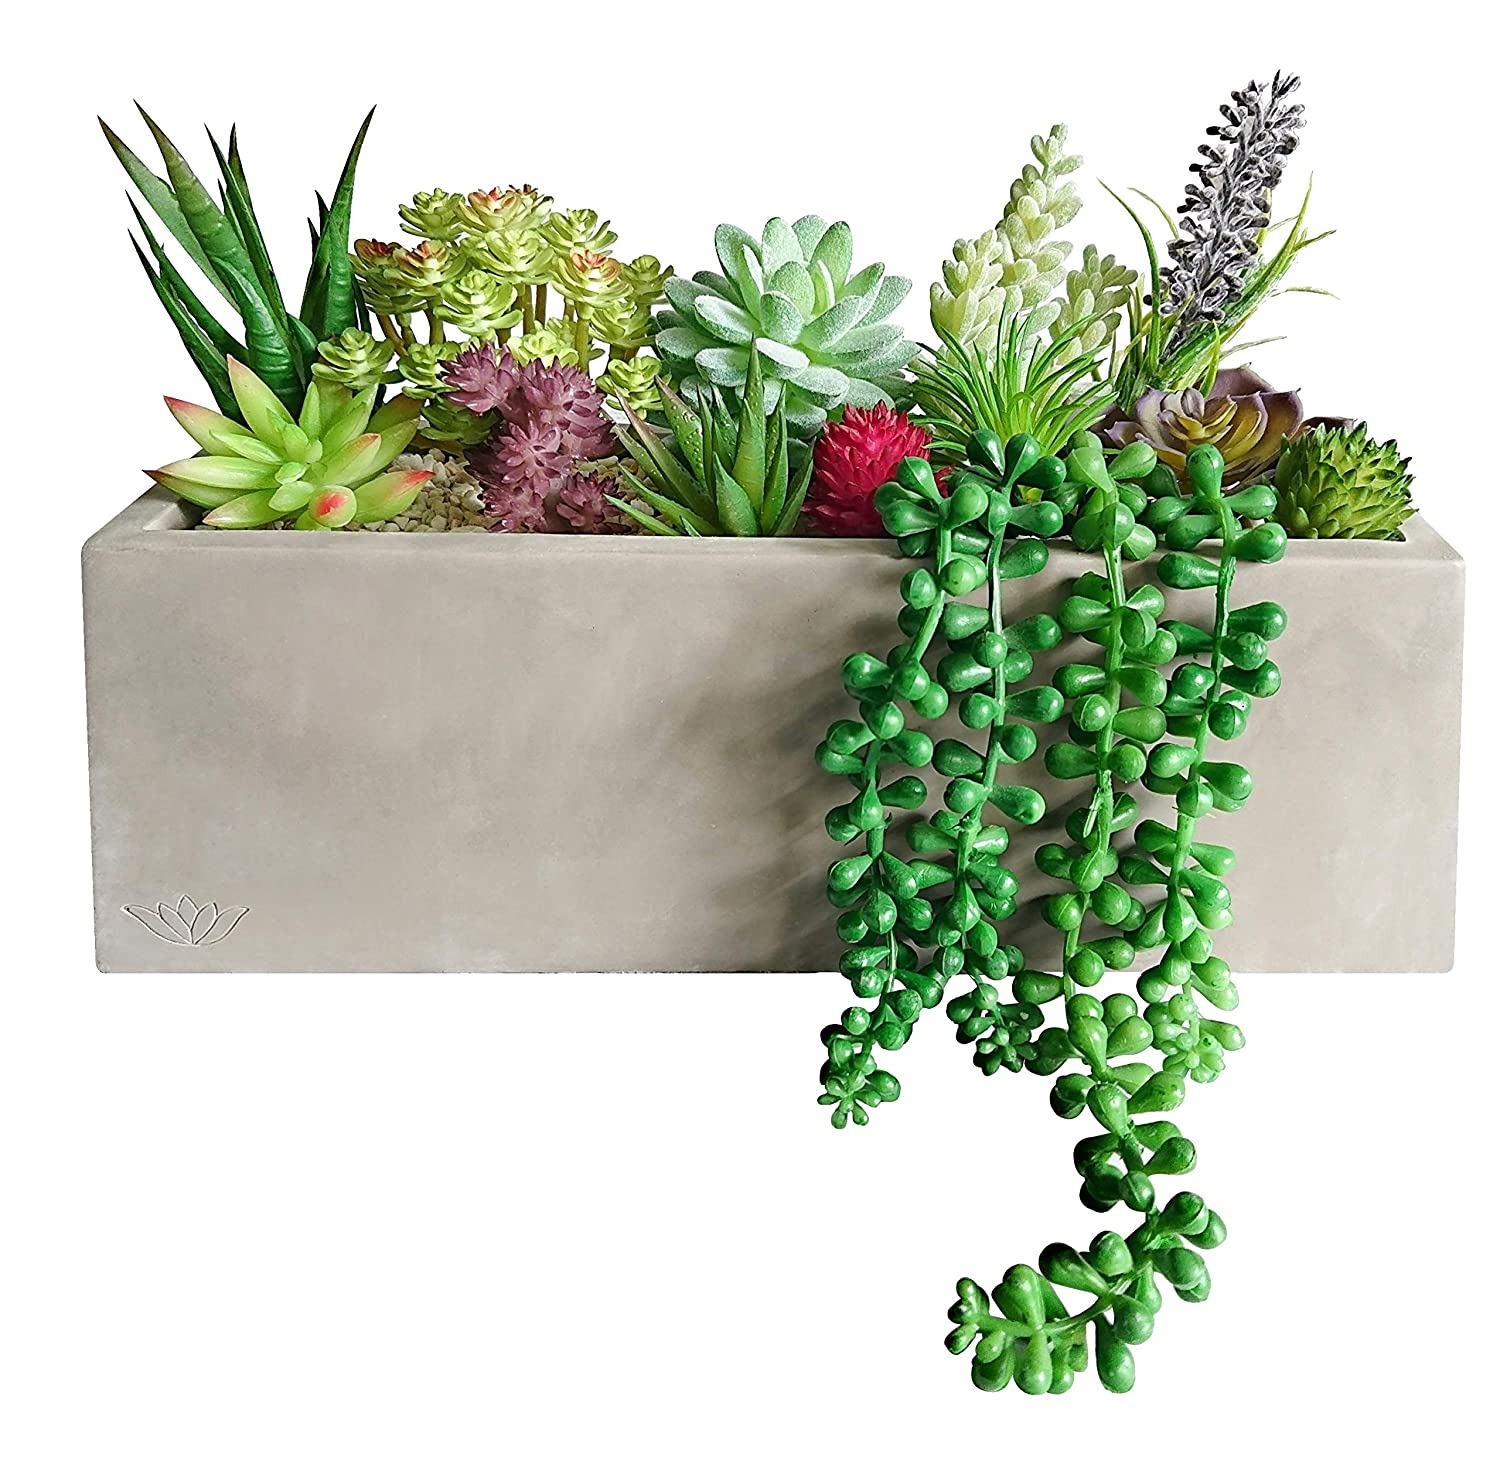 GreenBoxx Artificial Succulent Planter Arrangement Set - Faux Succulents, Cement Box and Pebbles - Indoor and Outdoor Decorative Fake Plants for Home Table Centerpiece, Window Display, Wedding Décor